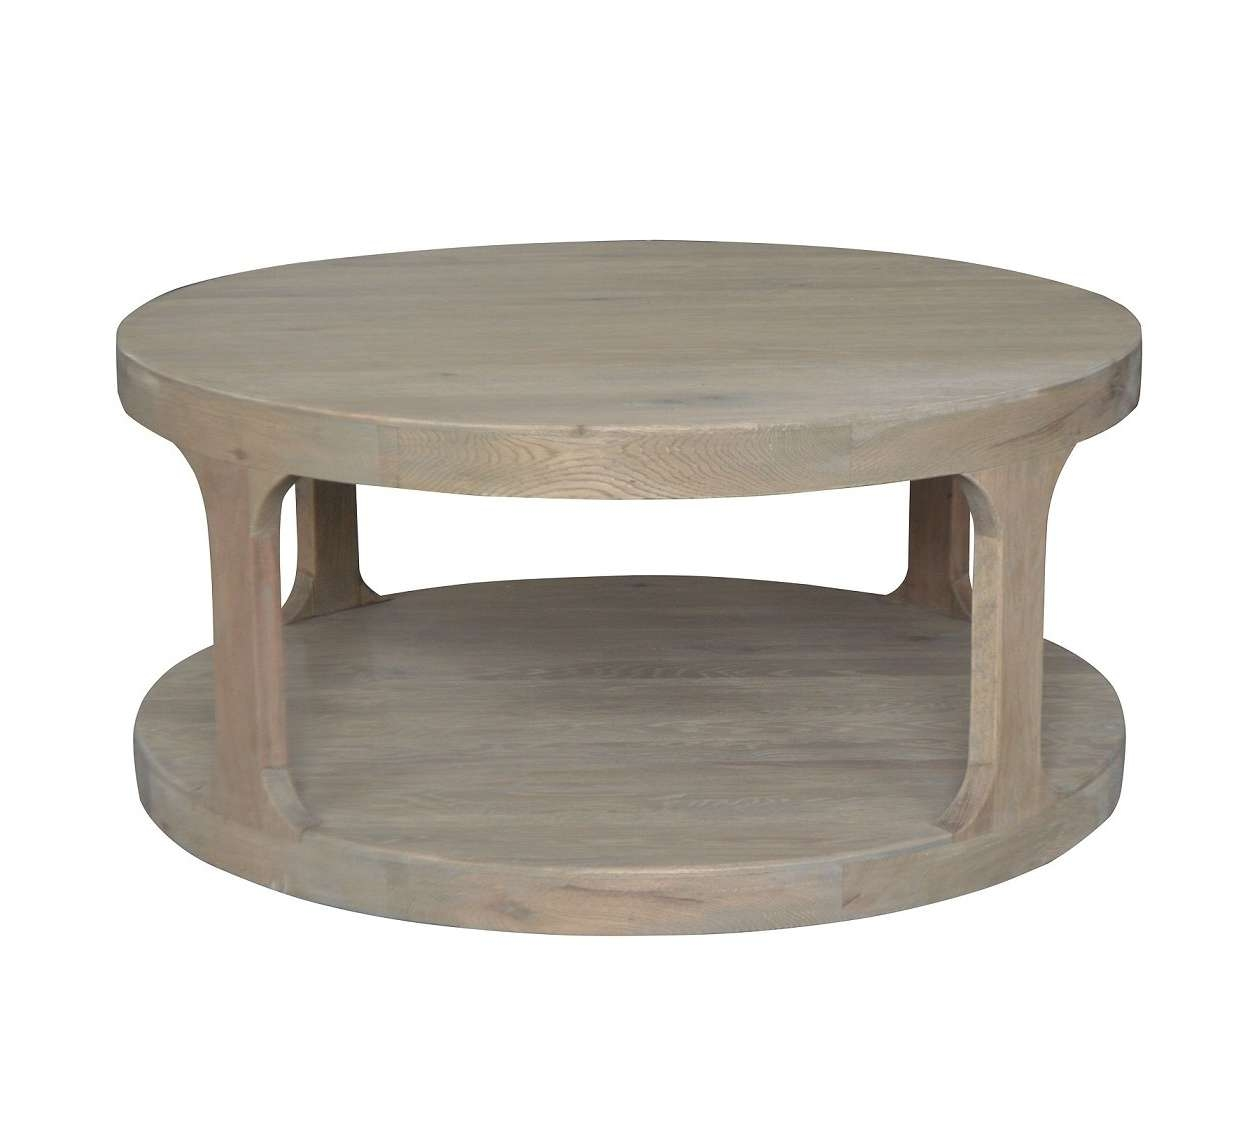 Industrial Round Coffee Table – Writehookstudio Intended For Fashionable Industrial Round Coffee Tables (View 17 of 20)